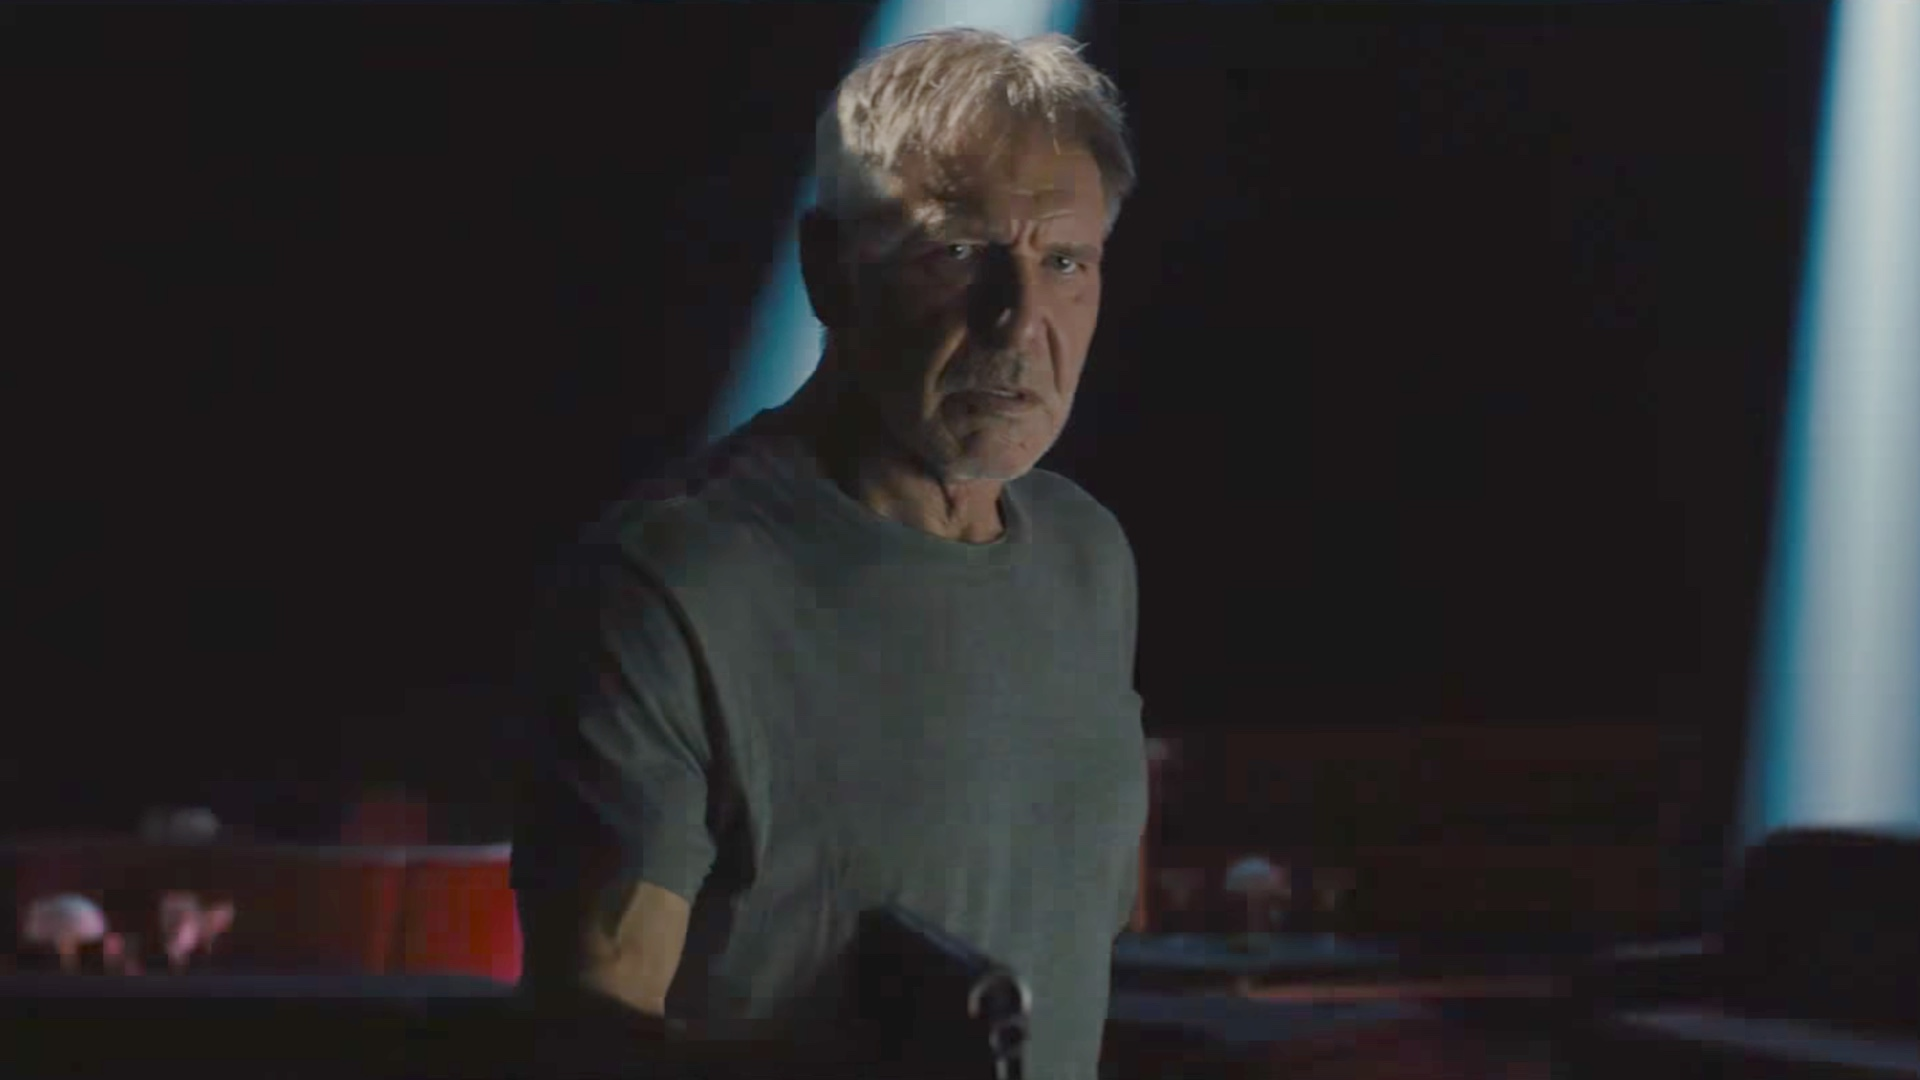 watch-this-action-packed-new-trailer-for-blade-runner-2049-now-social.jpg